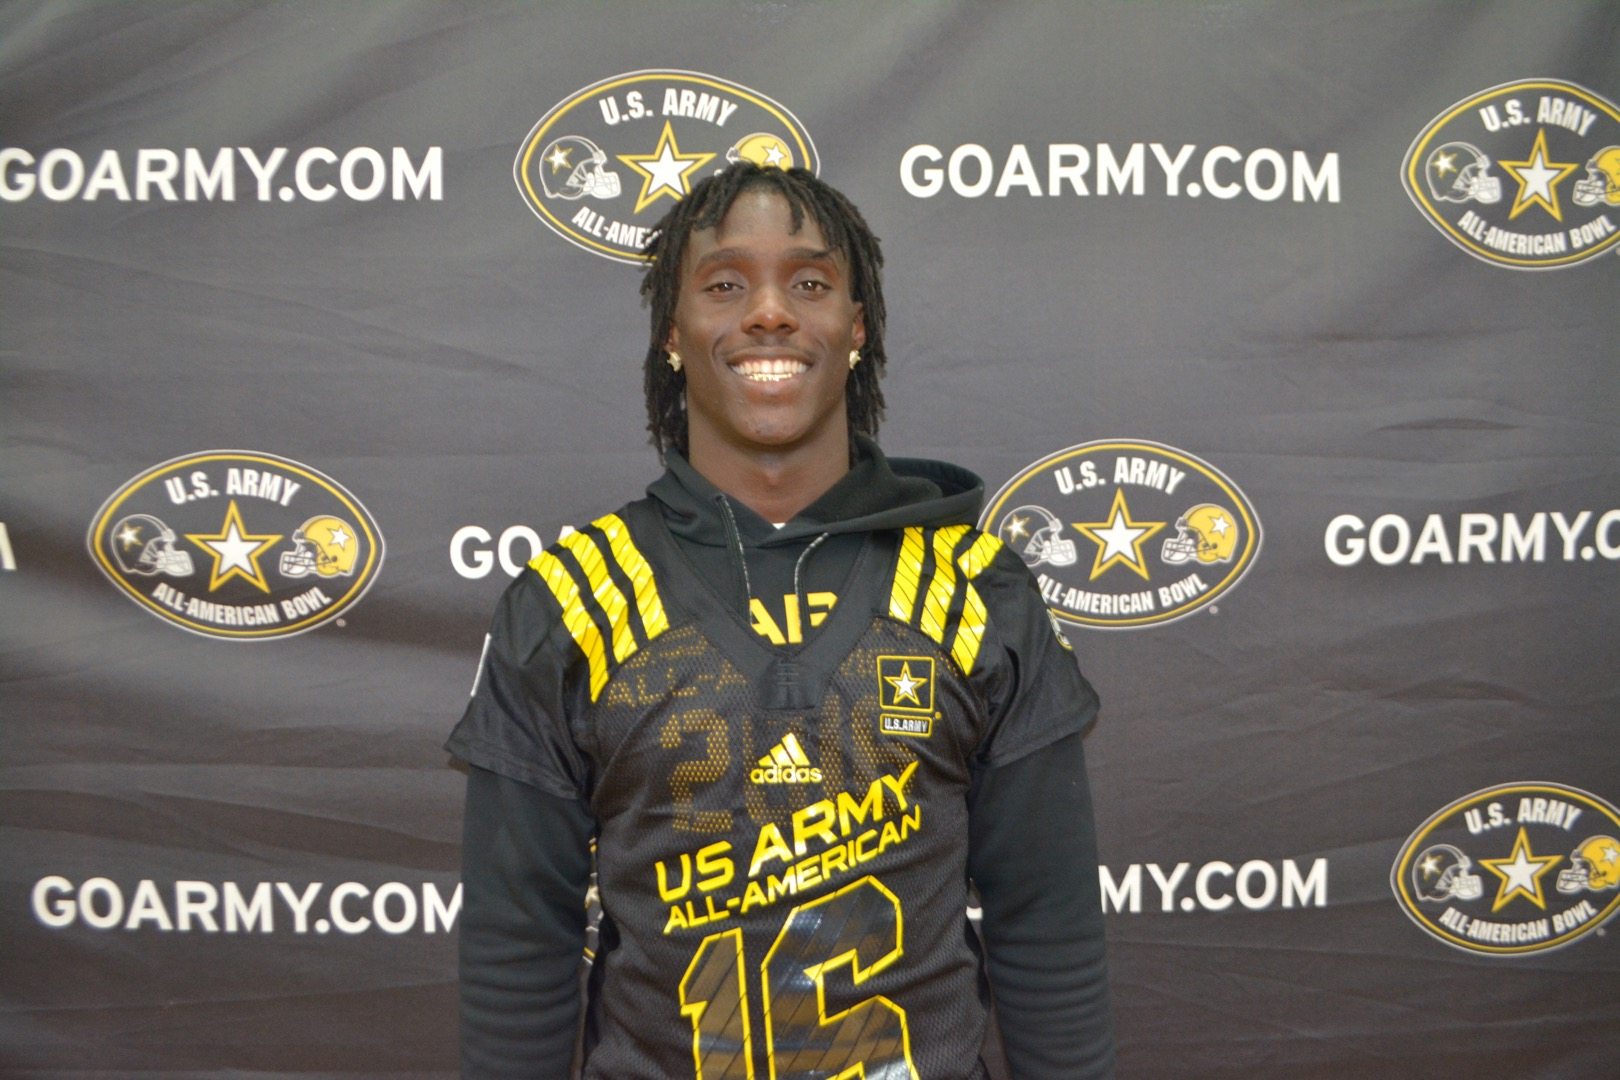 Demario McCall was presented his jersey during the Army All-American Bowl Selection Tour (Photo: Army All-American Bowl)